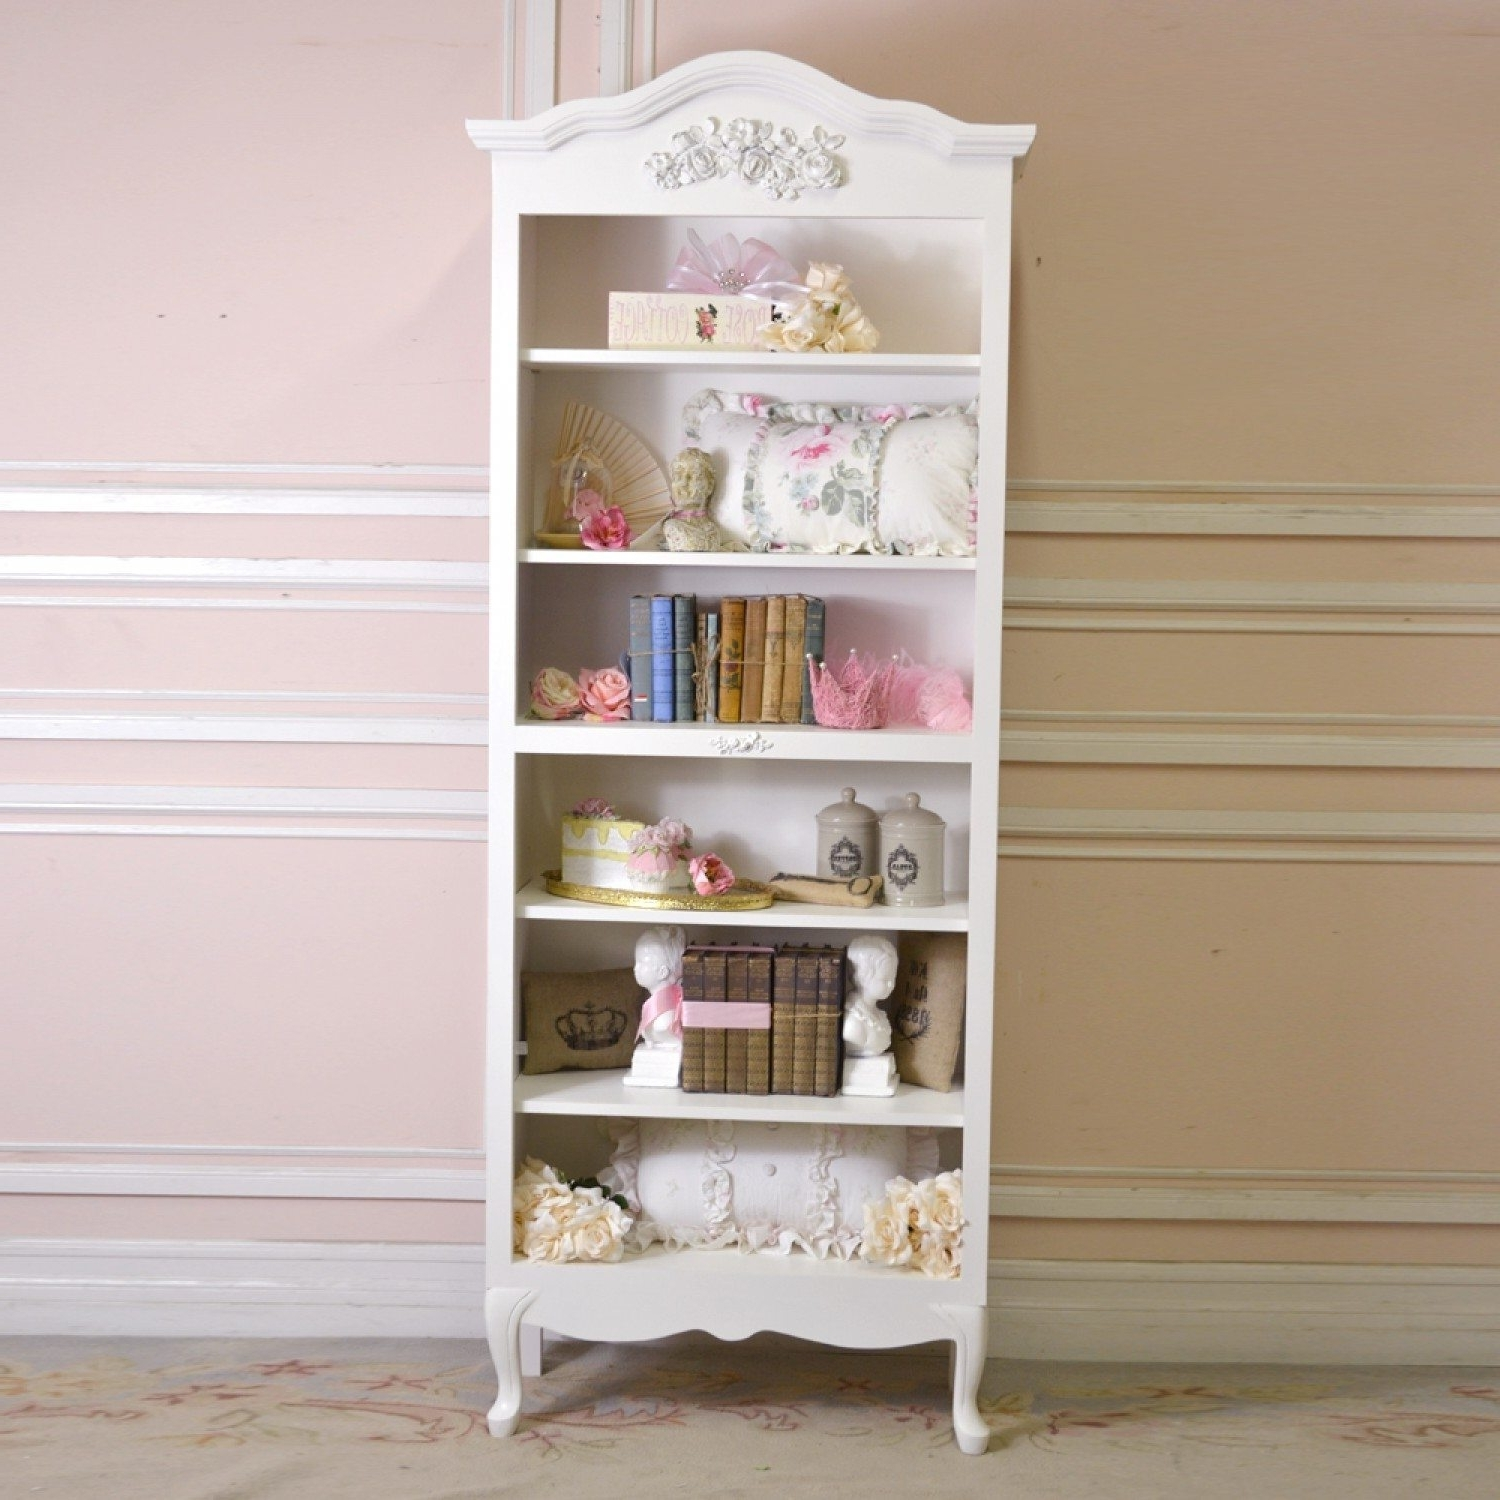 Bookcases An Shelving Vintage And Shab Chic Bookcase Shabby Chic Inside 2018 Shabby Chic Bookcases (View 2 of 15)